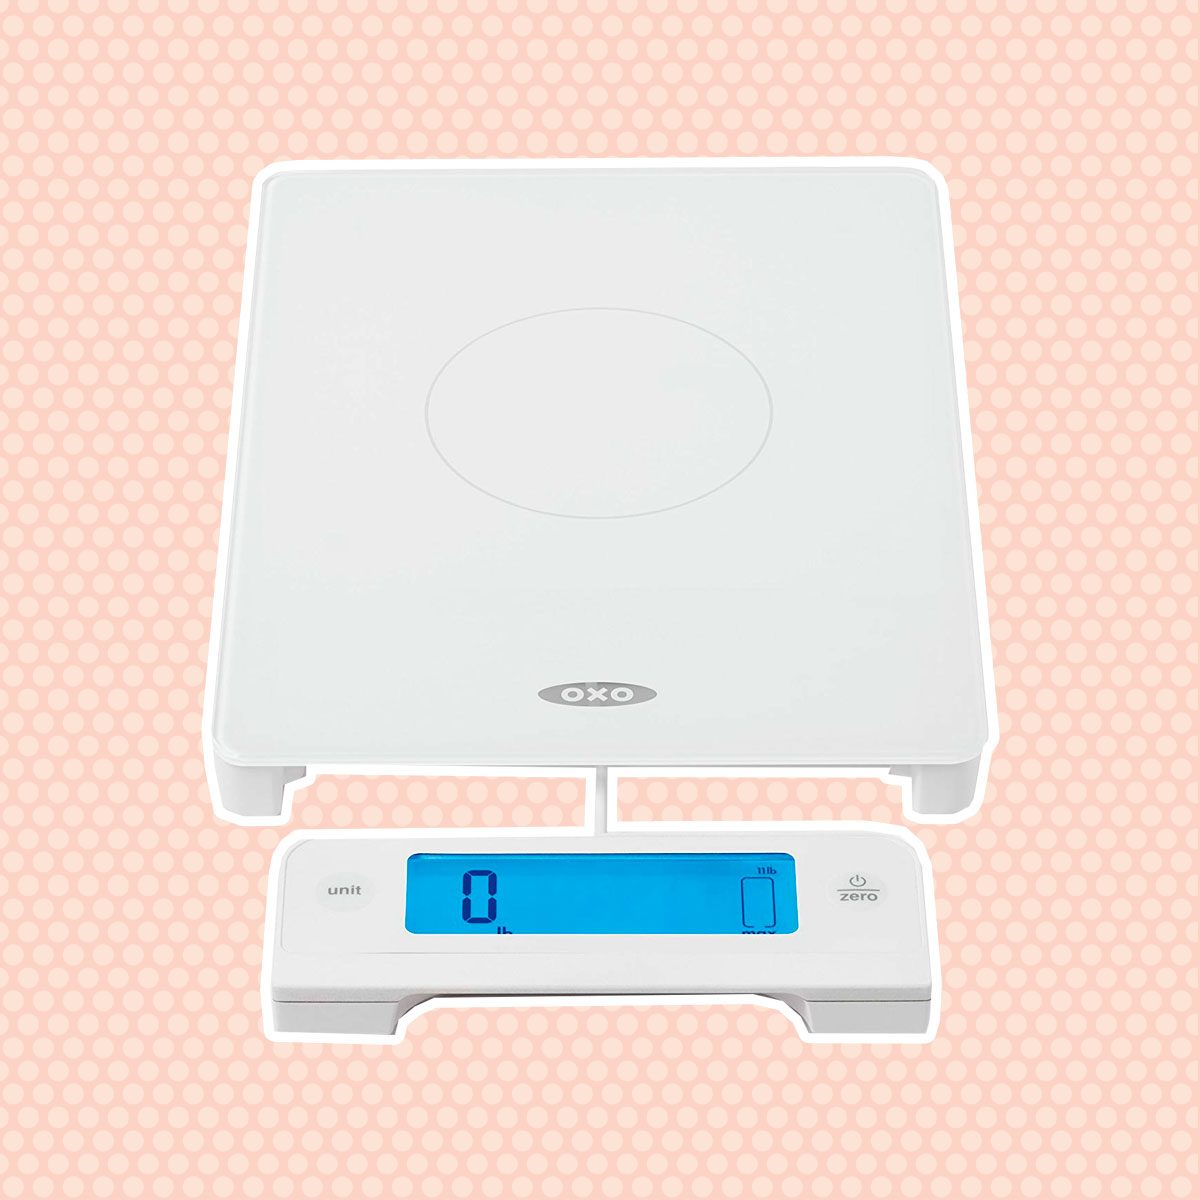 OXO 11176600 Good Grips Digital Glass Food Scale with Pull Out Display, 11 Pound, White